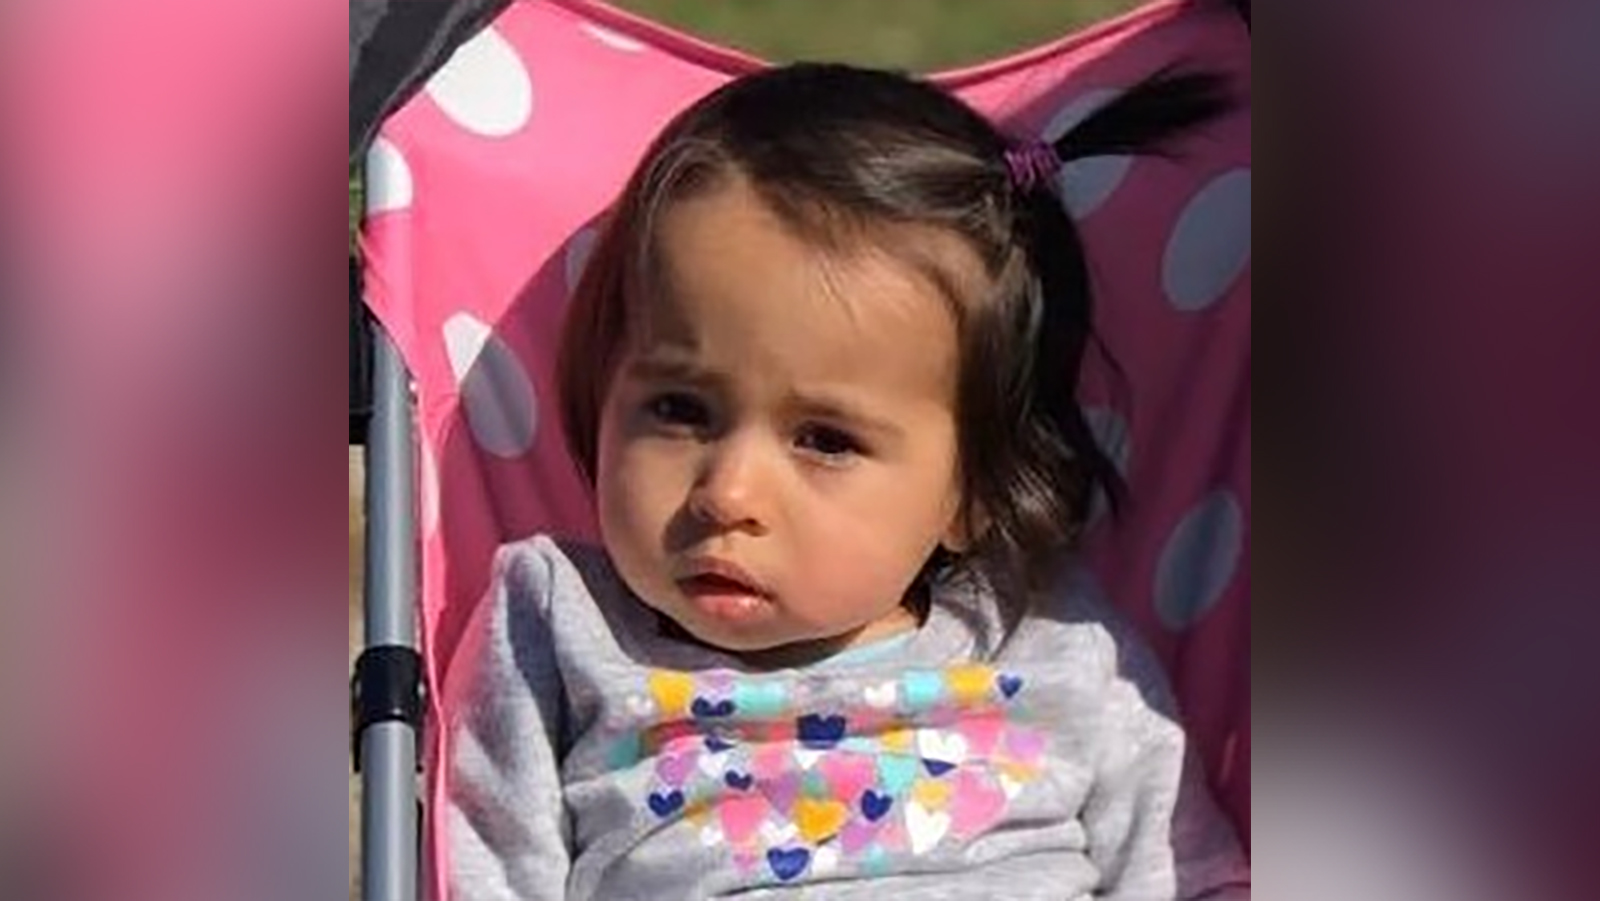 Police are searching for 1-year-old after finding a woman dead in an Ansonia, Connecticut, home